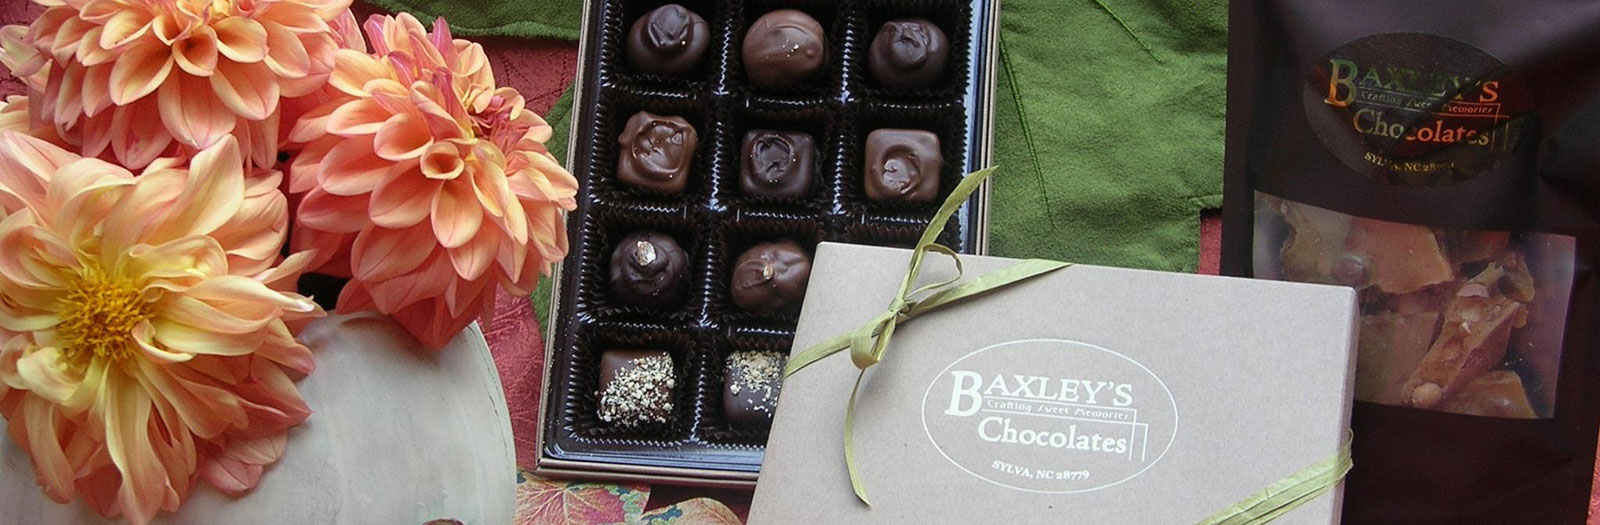 Photo of Baxley's Chocolates